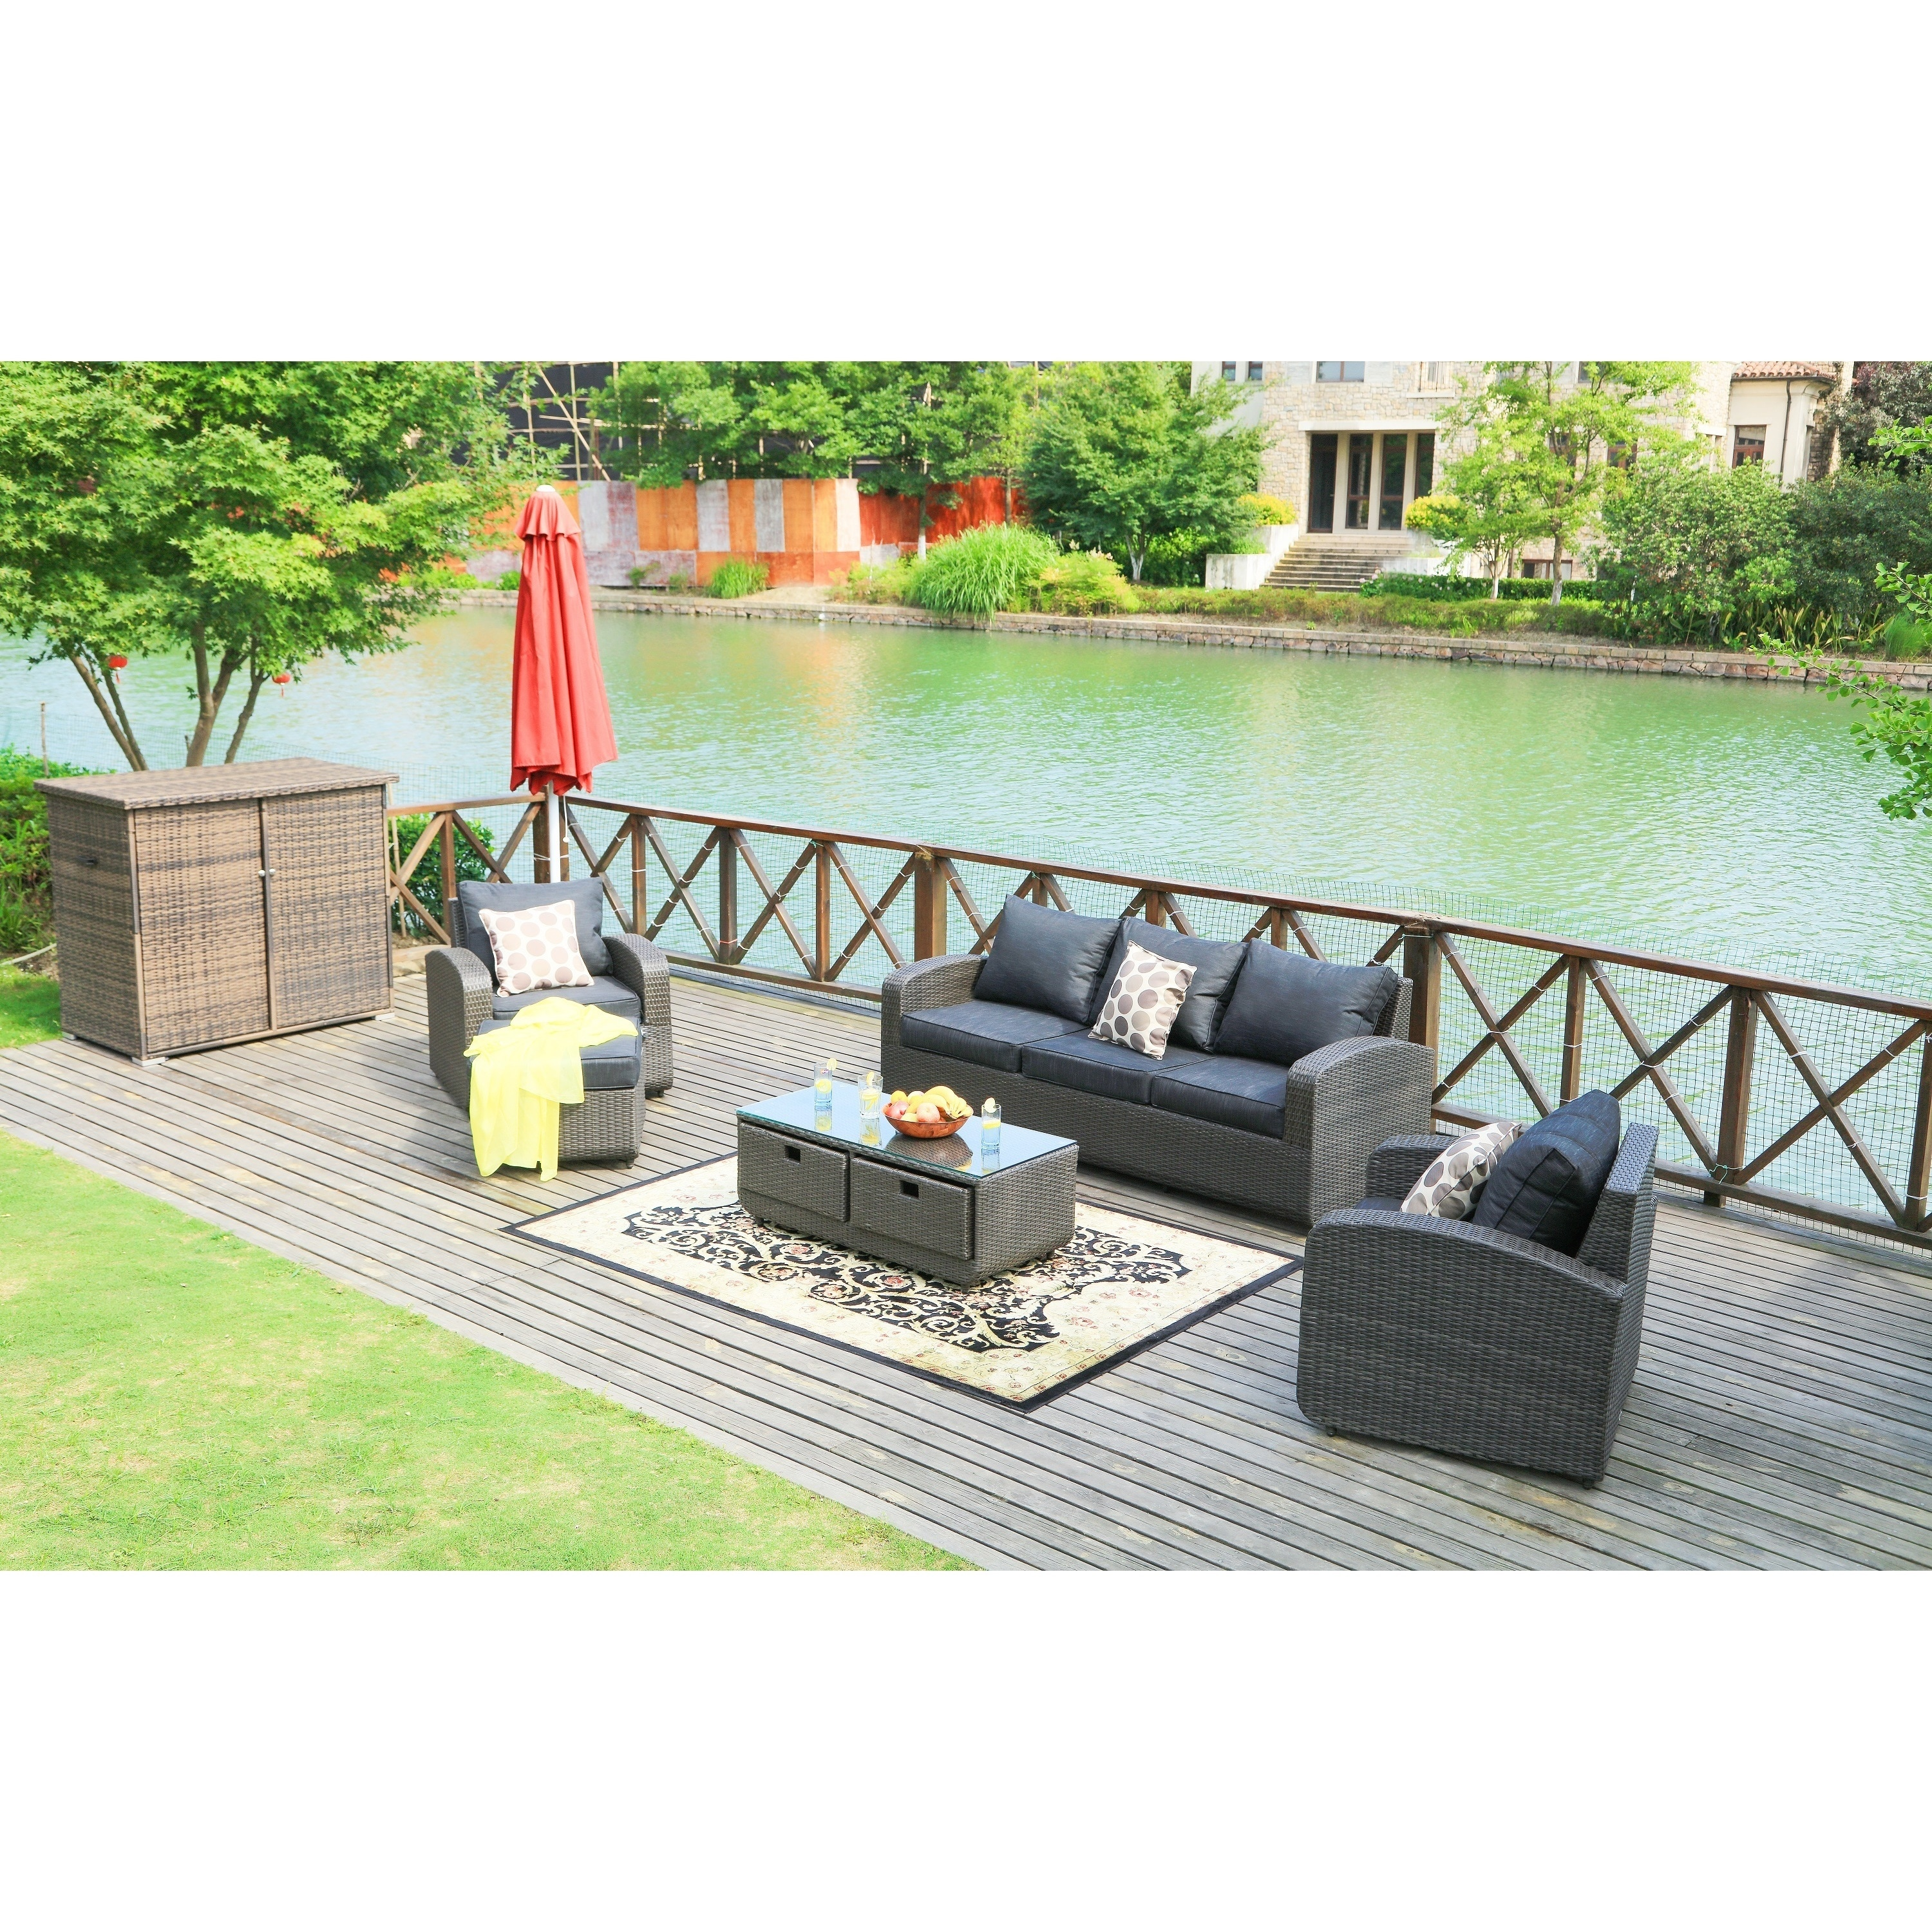 Direct wicker strathmere 5 piece wicker patio furniture set with storage box by